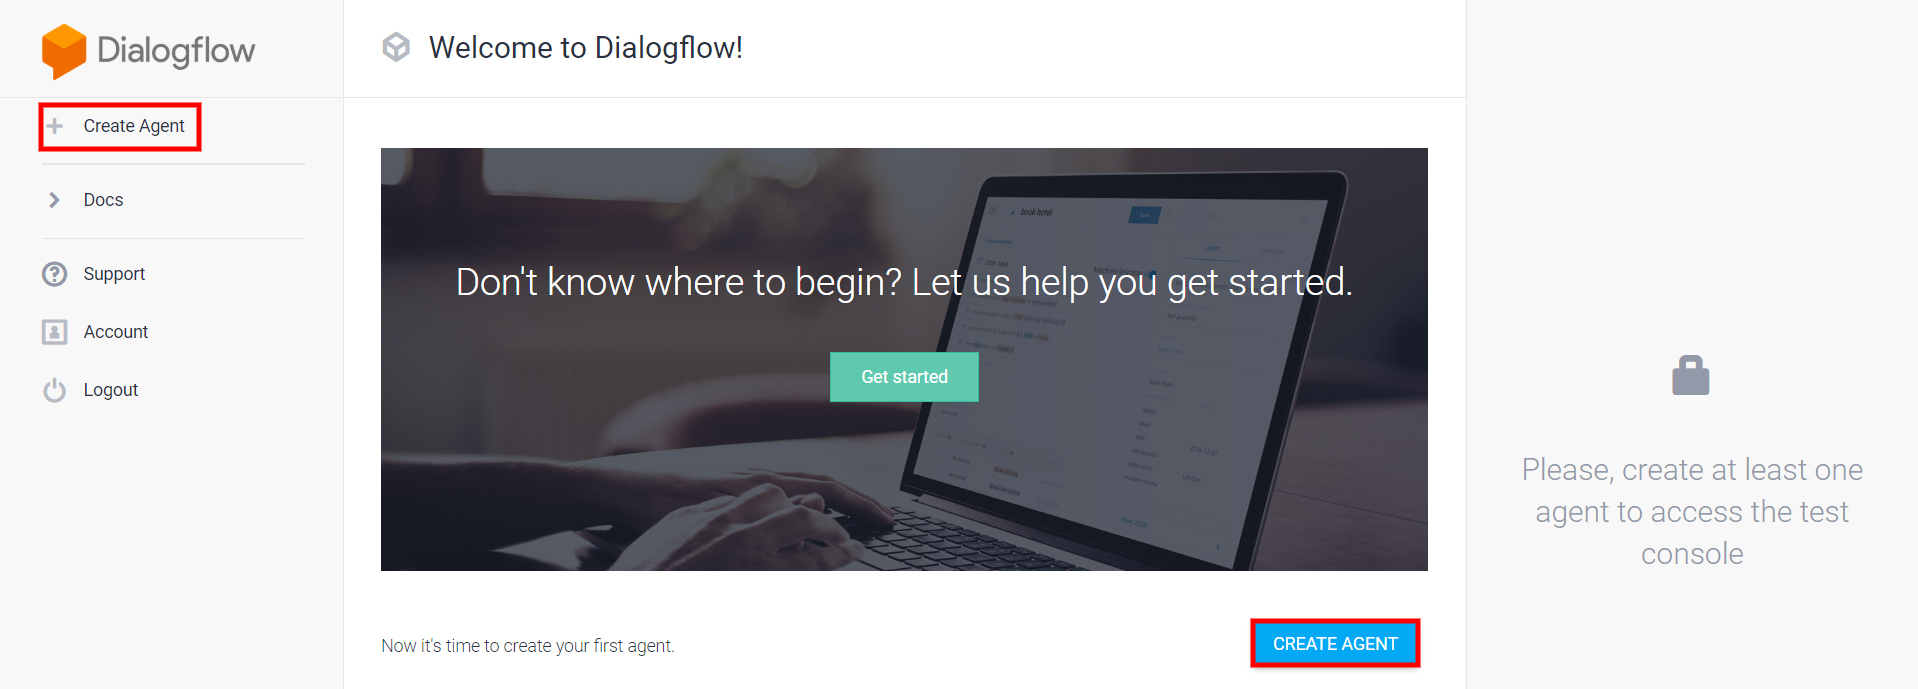 The welcome page for Dialogflow